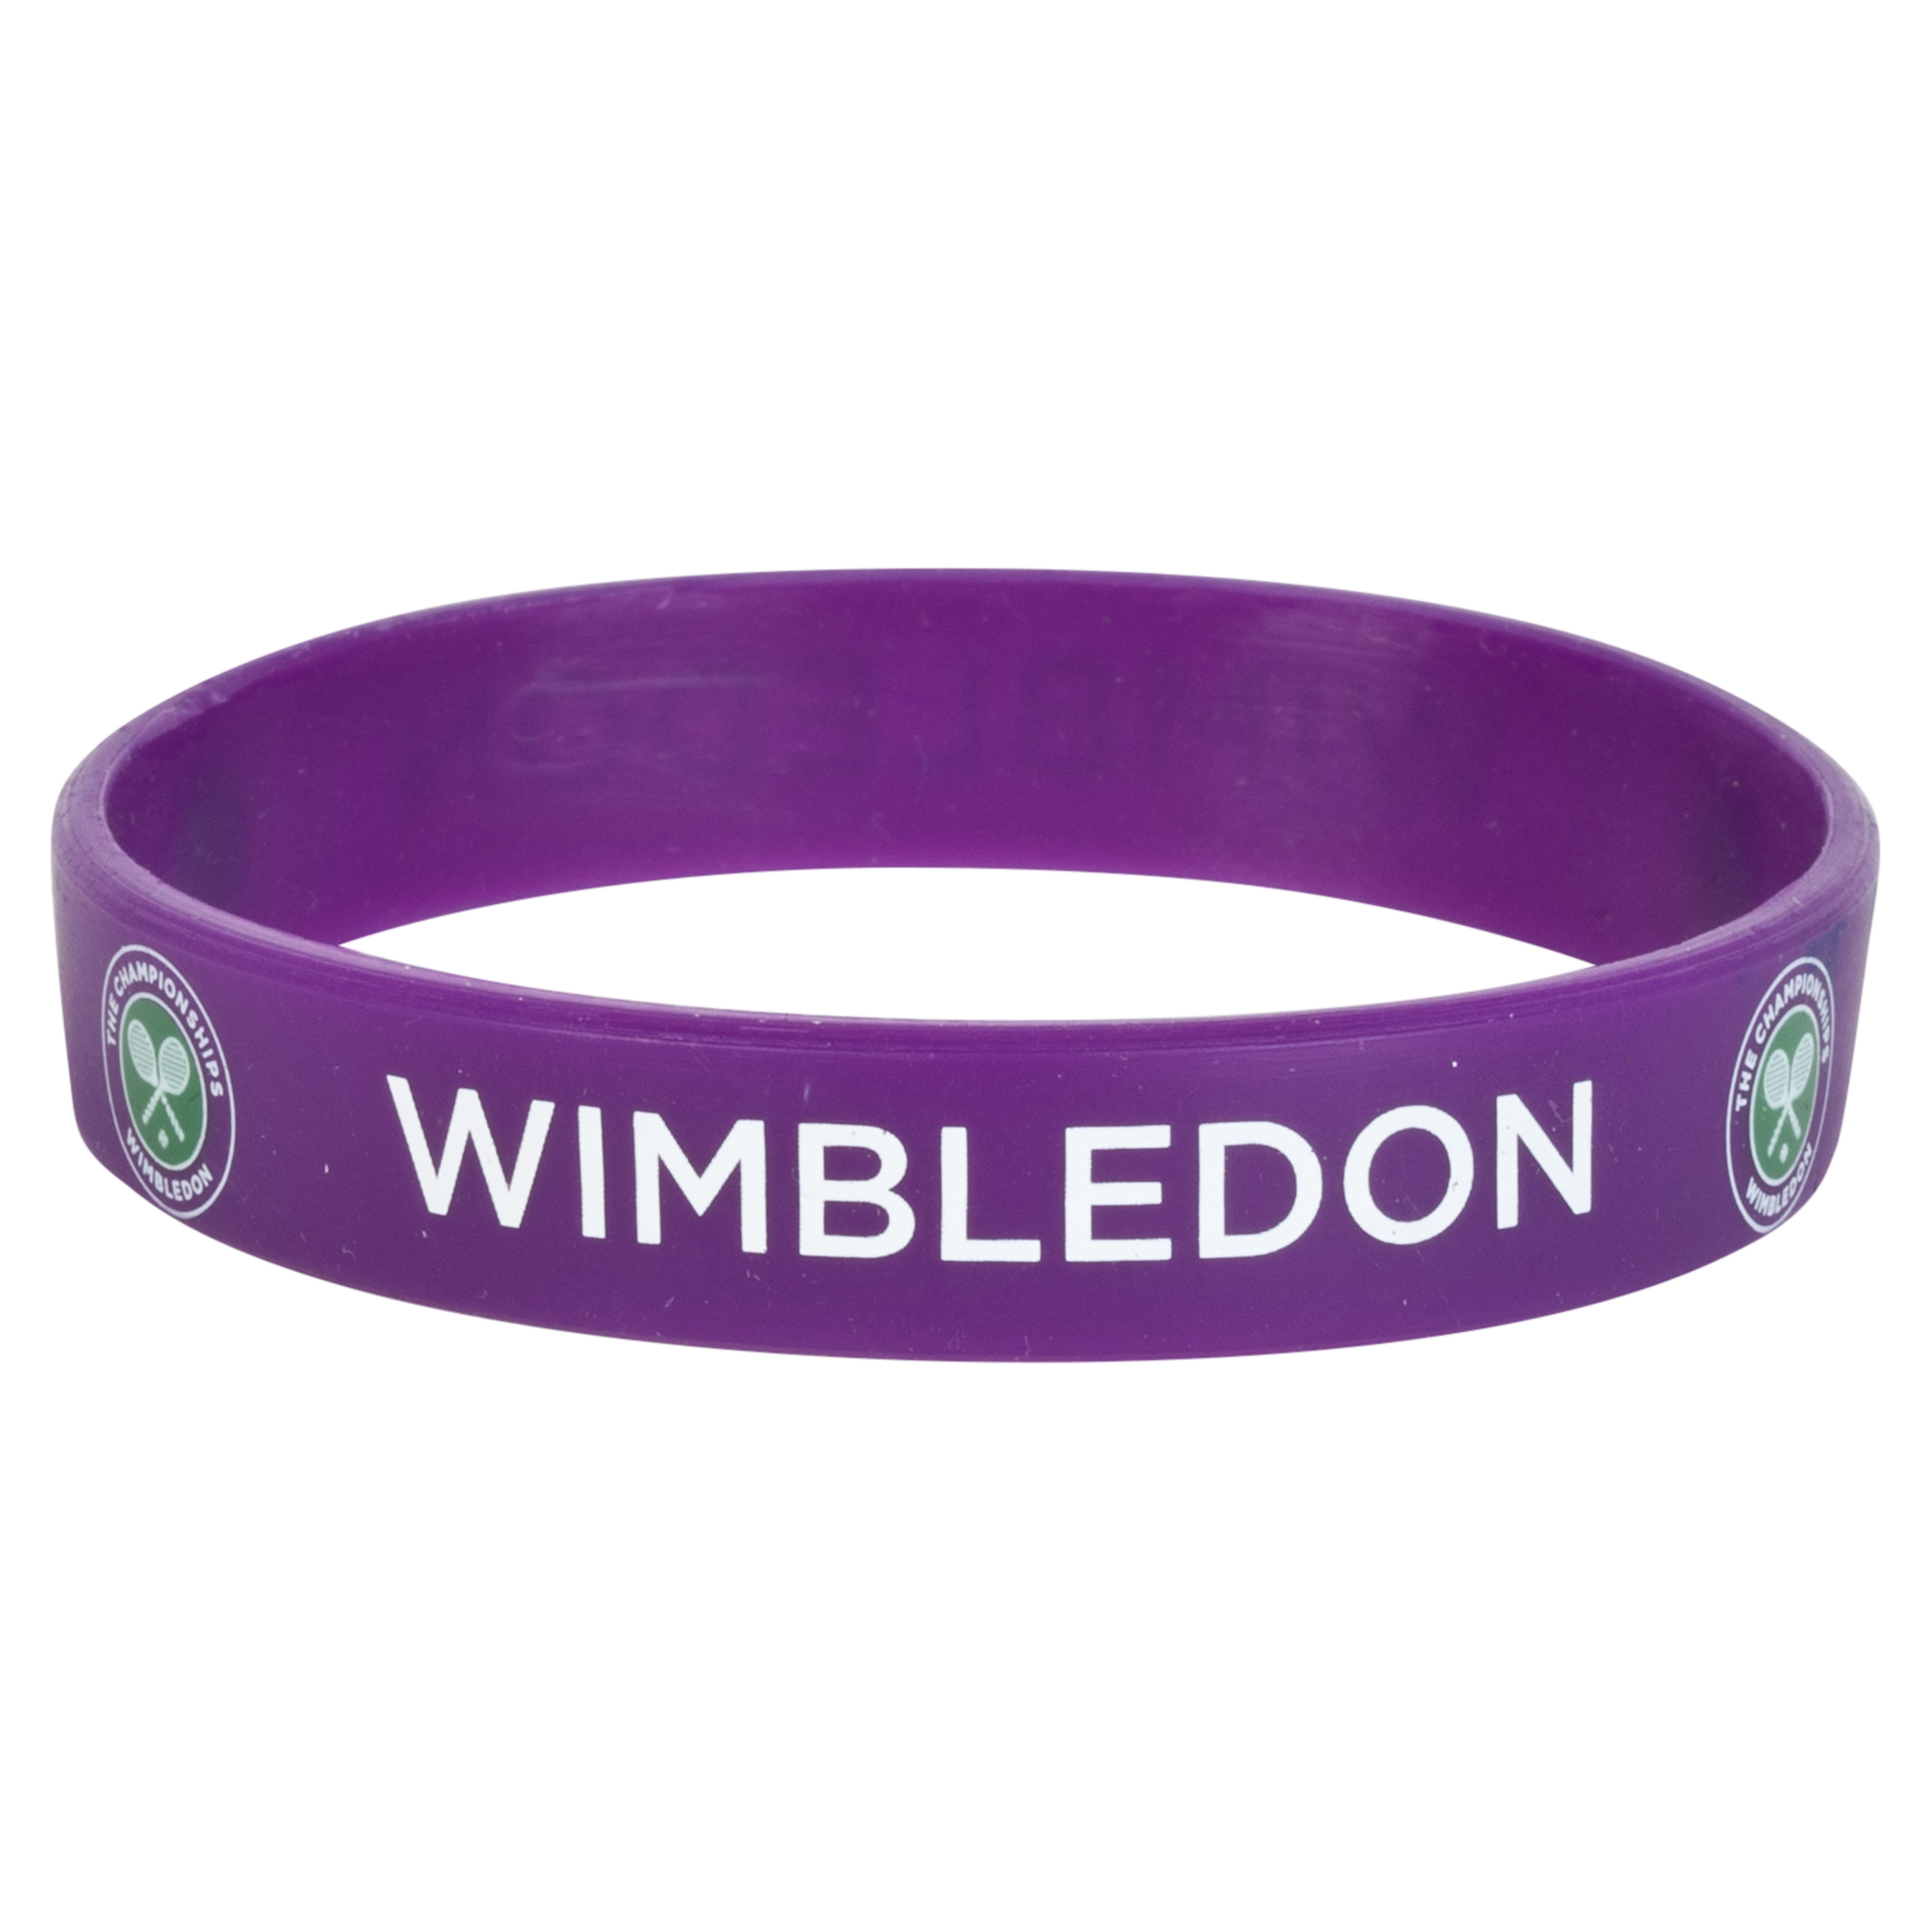 Wimbledon Wrist Band - Purple